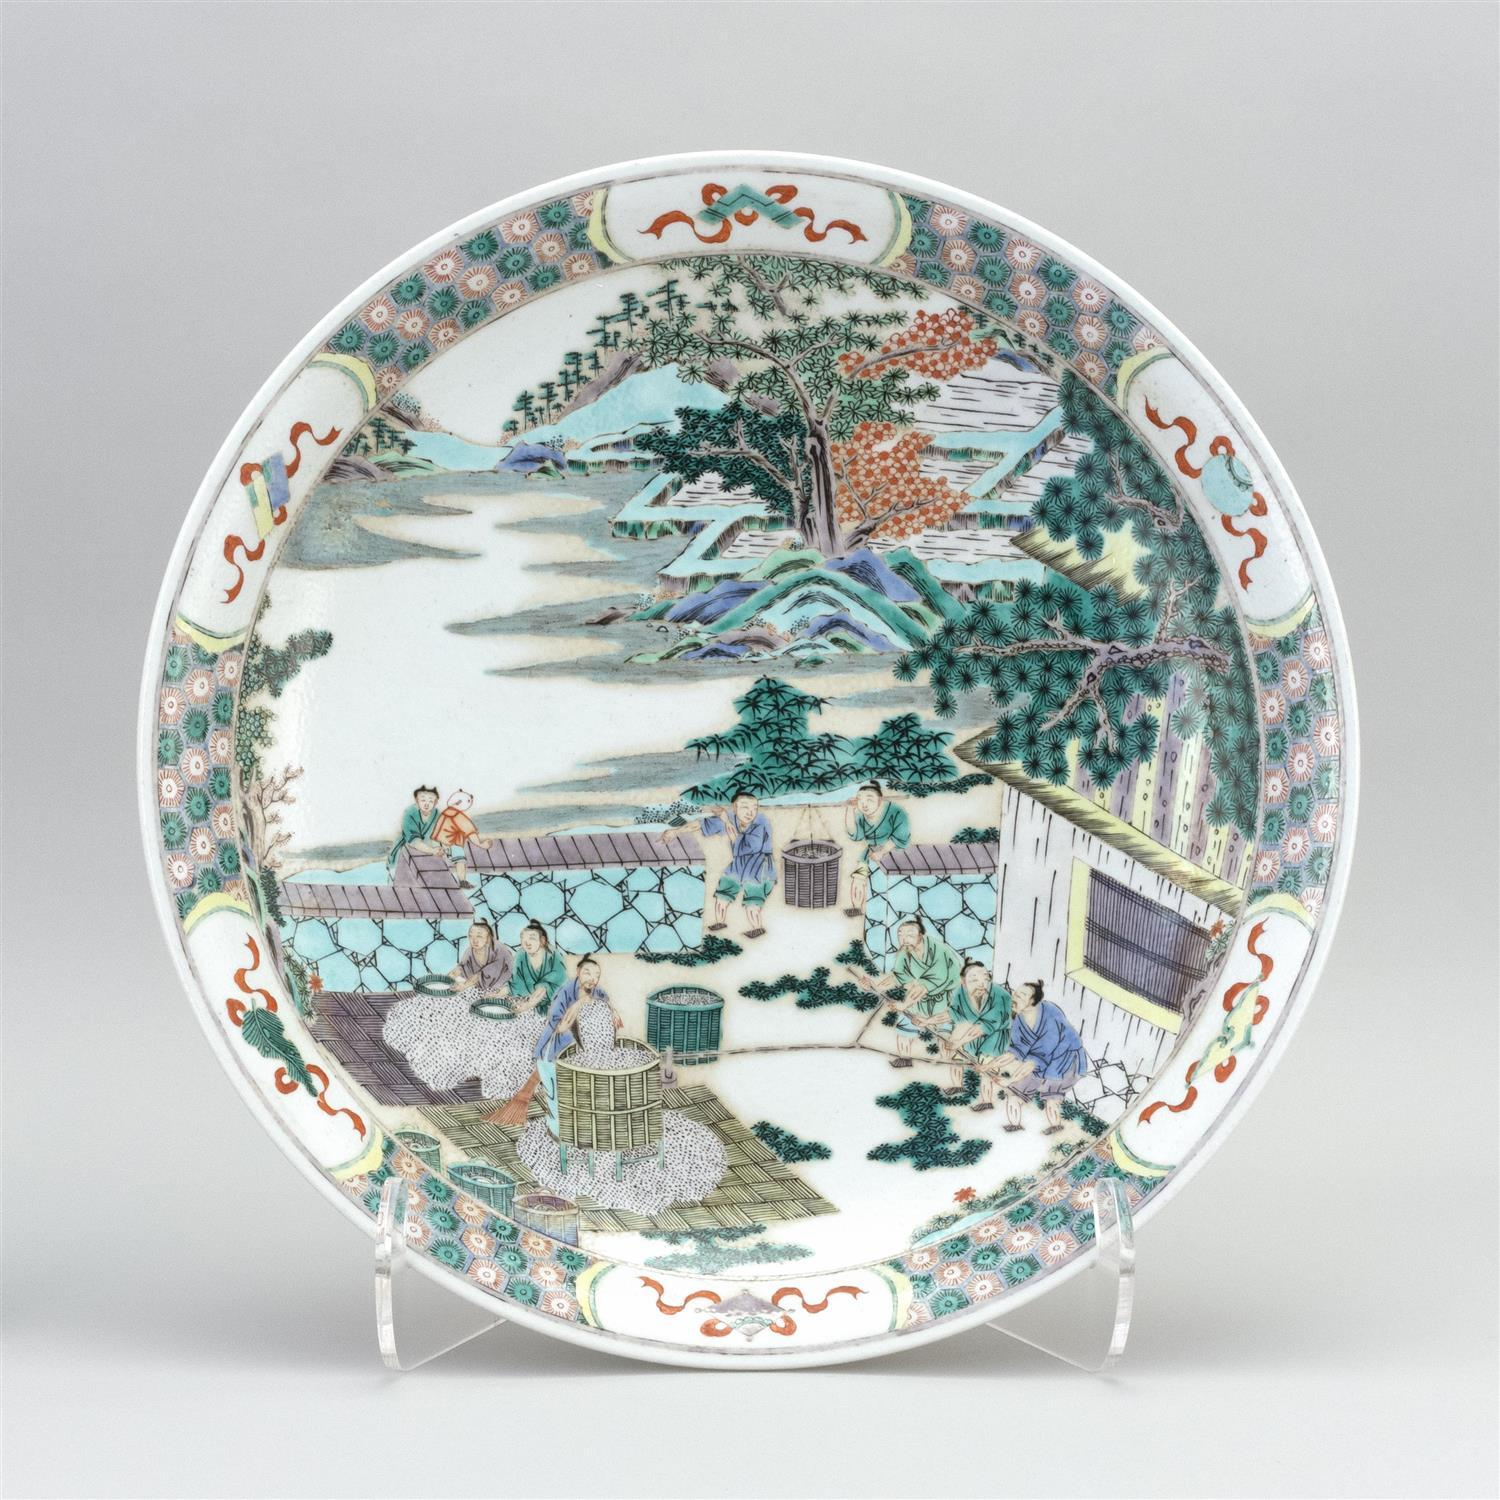 "CHINESE FAMILLE VERTE PORCELAIN CHARGER Figural landscape decoration. Six-character Kangxi mark on base. Diameter 16.6""."